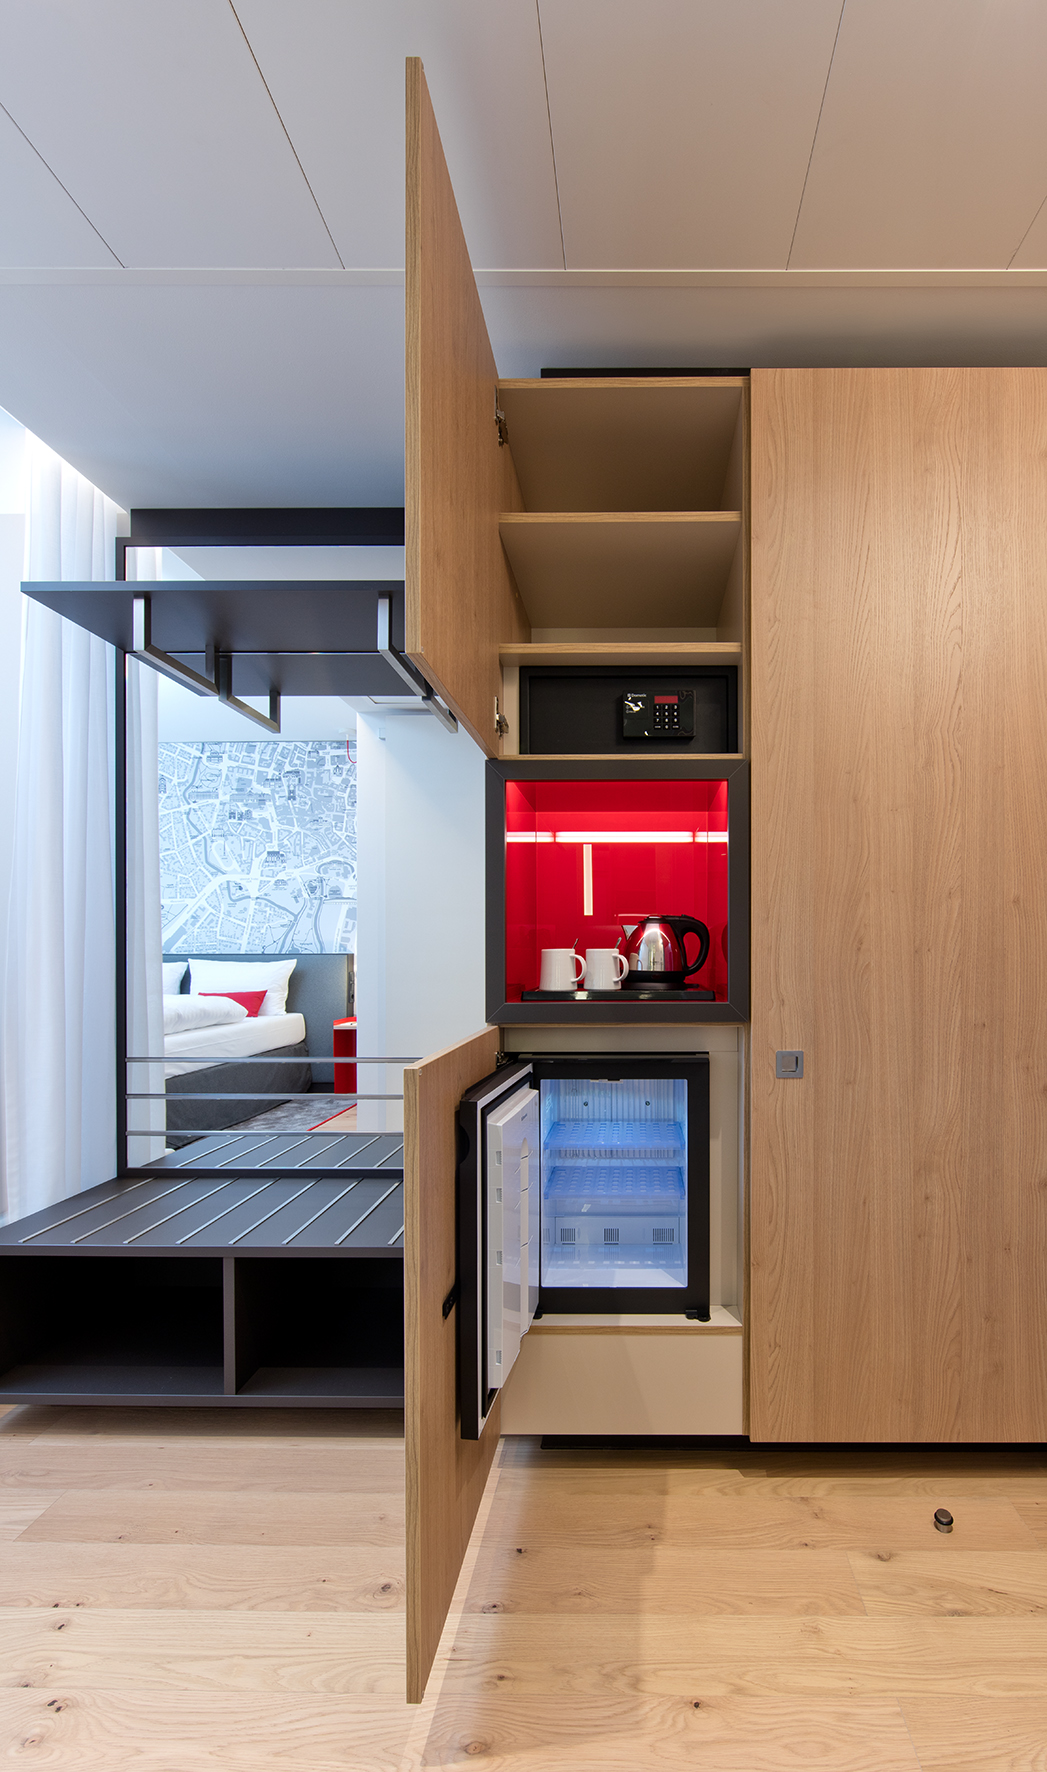 Many Häfele products are used in the rooms: A robust luggage rack is integrated in the wardrobe with floor-to-ceiling mirror, and there is a safe and a minibar in the cabinet next to it.